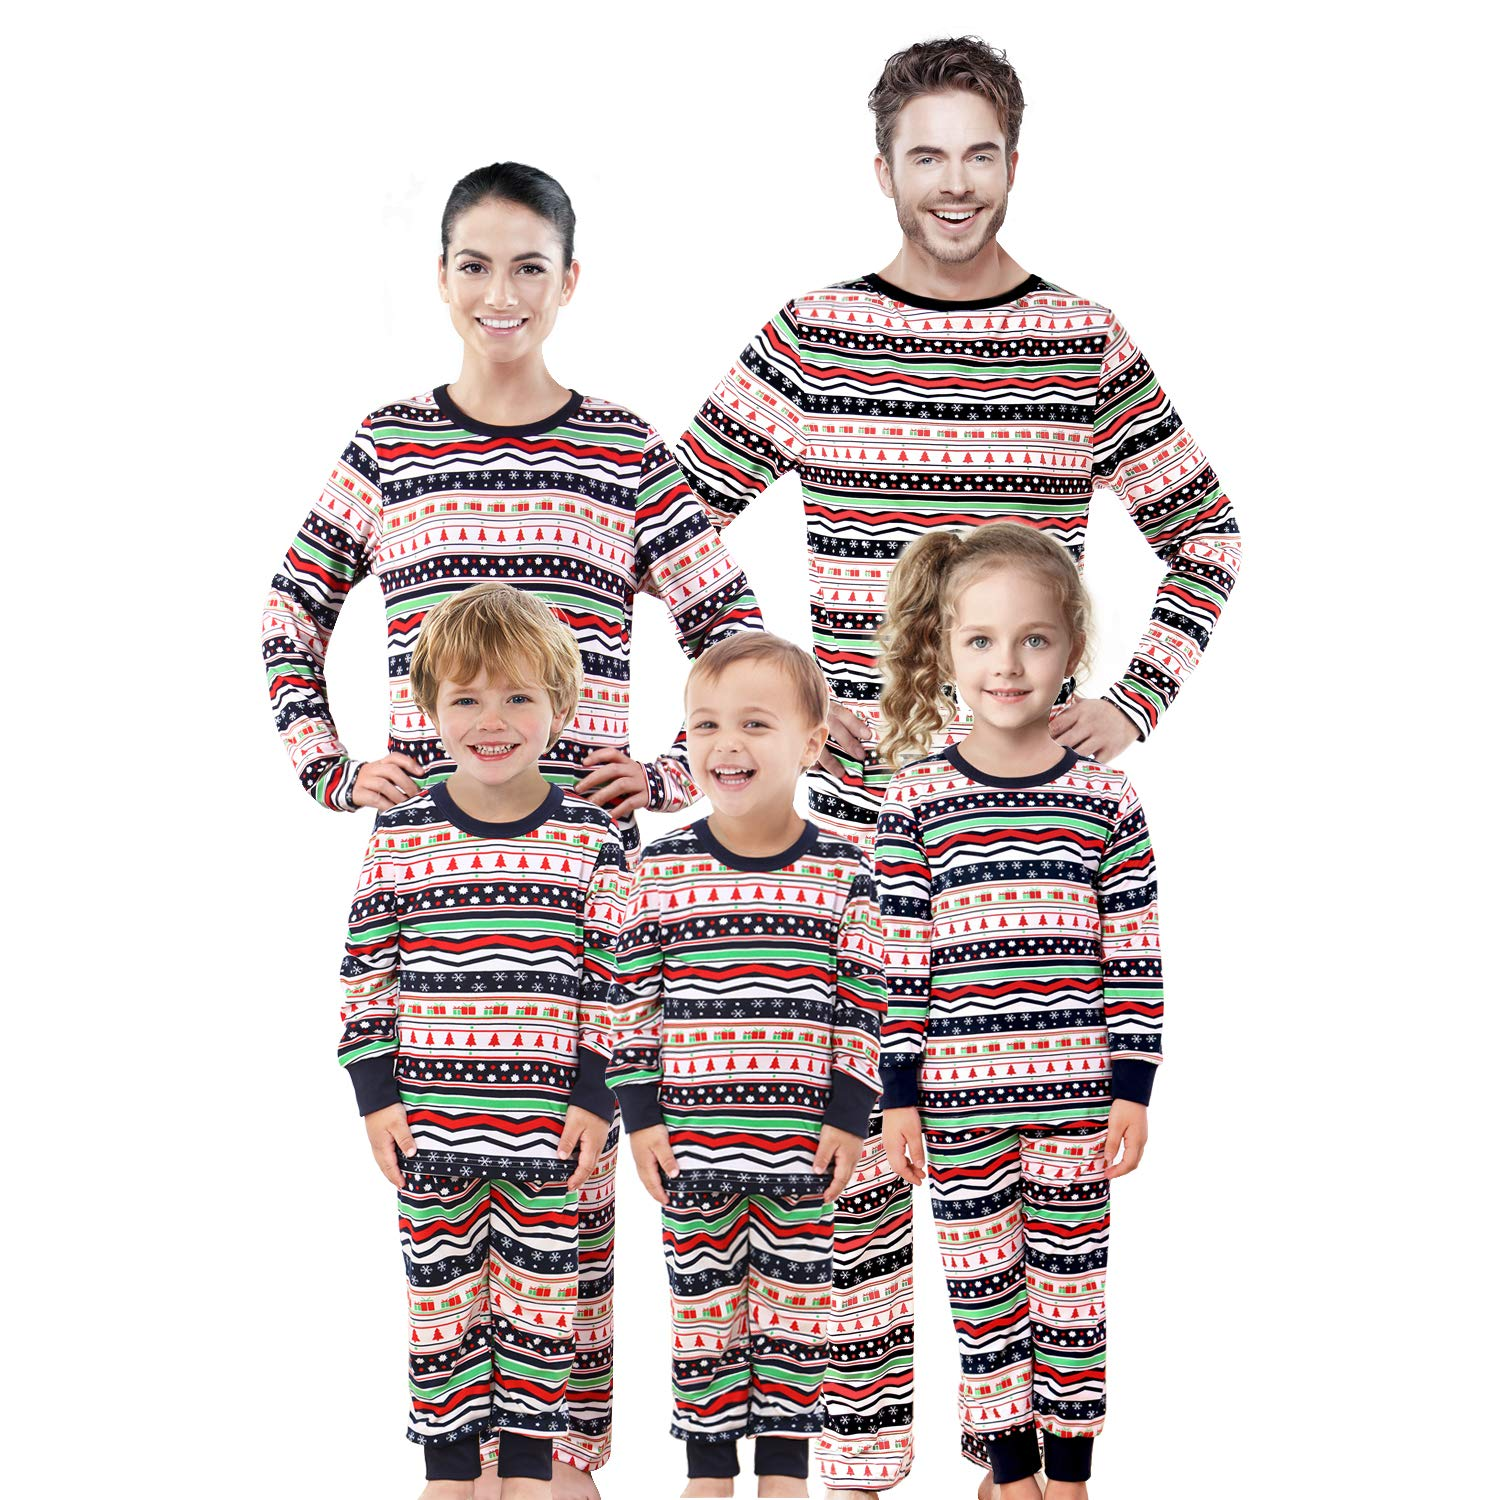 2f34d977f564 Amazon.com: Rnxrbb Family Christmas Pajamas Set Matching Men, Women Youth  PJs Tops Bottoms Warm Classic Red Colors: Clothing